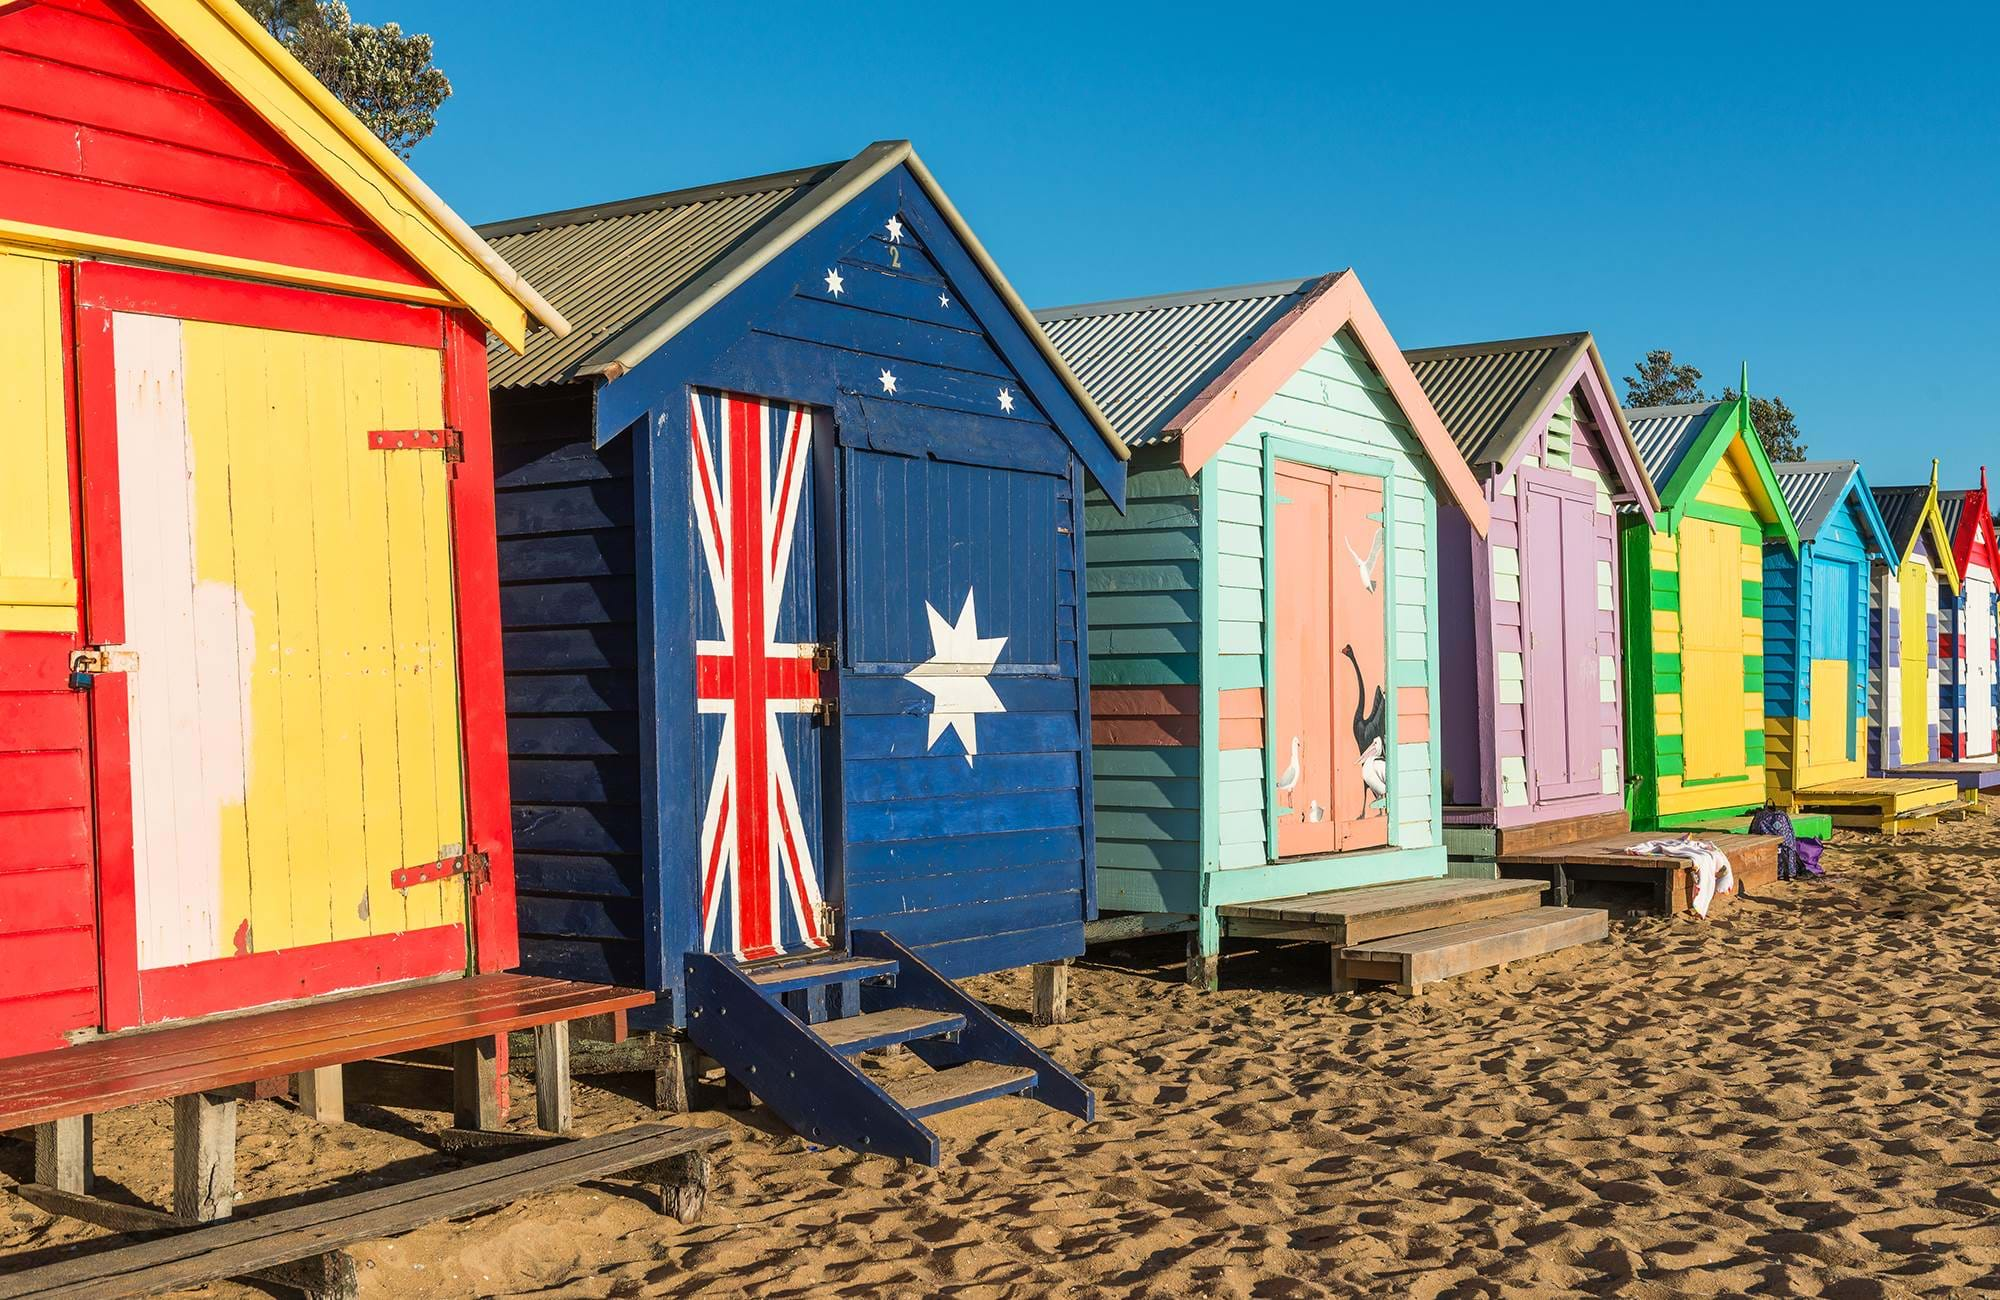 australia-melbourne-brighton-beach-colorful-huts